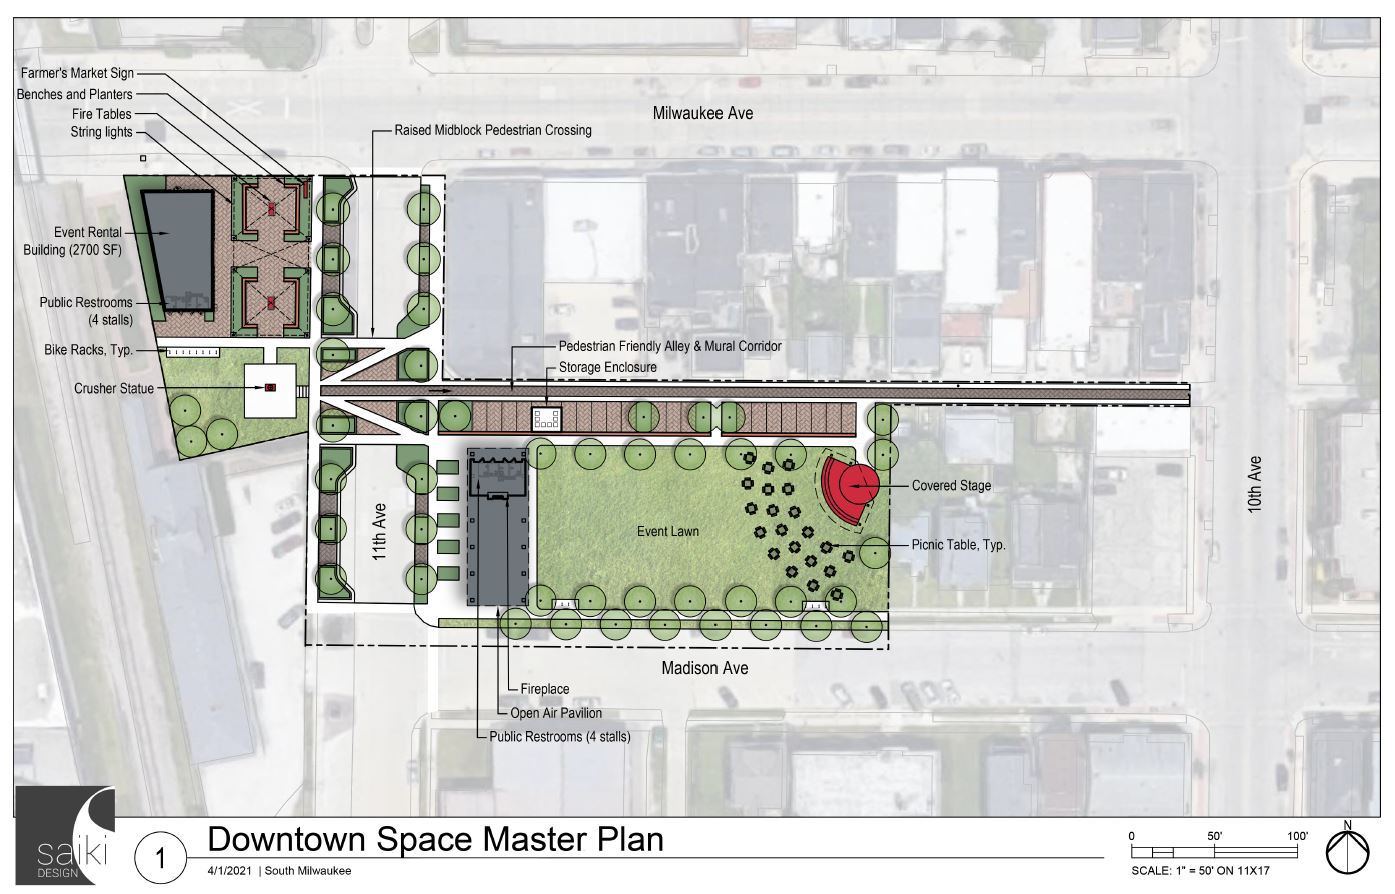 Downtown Space Master Plan